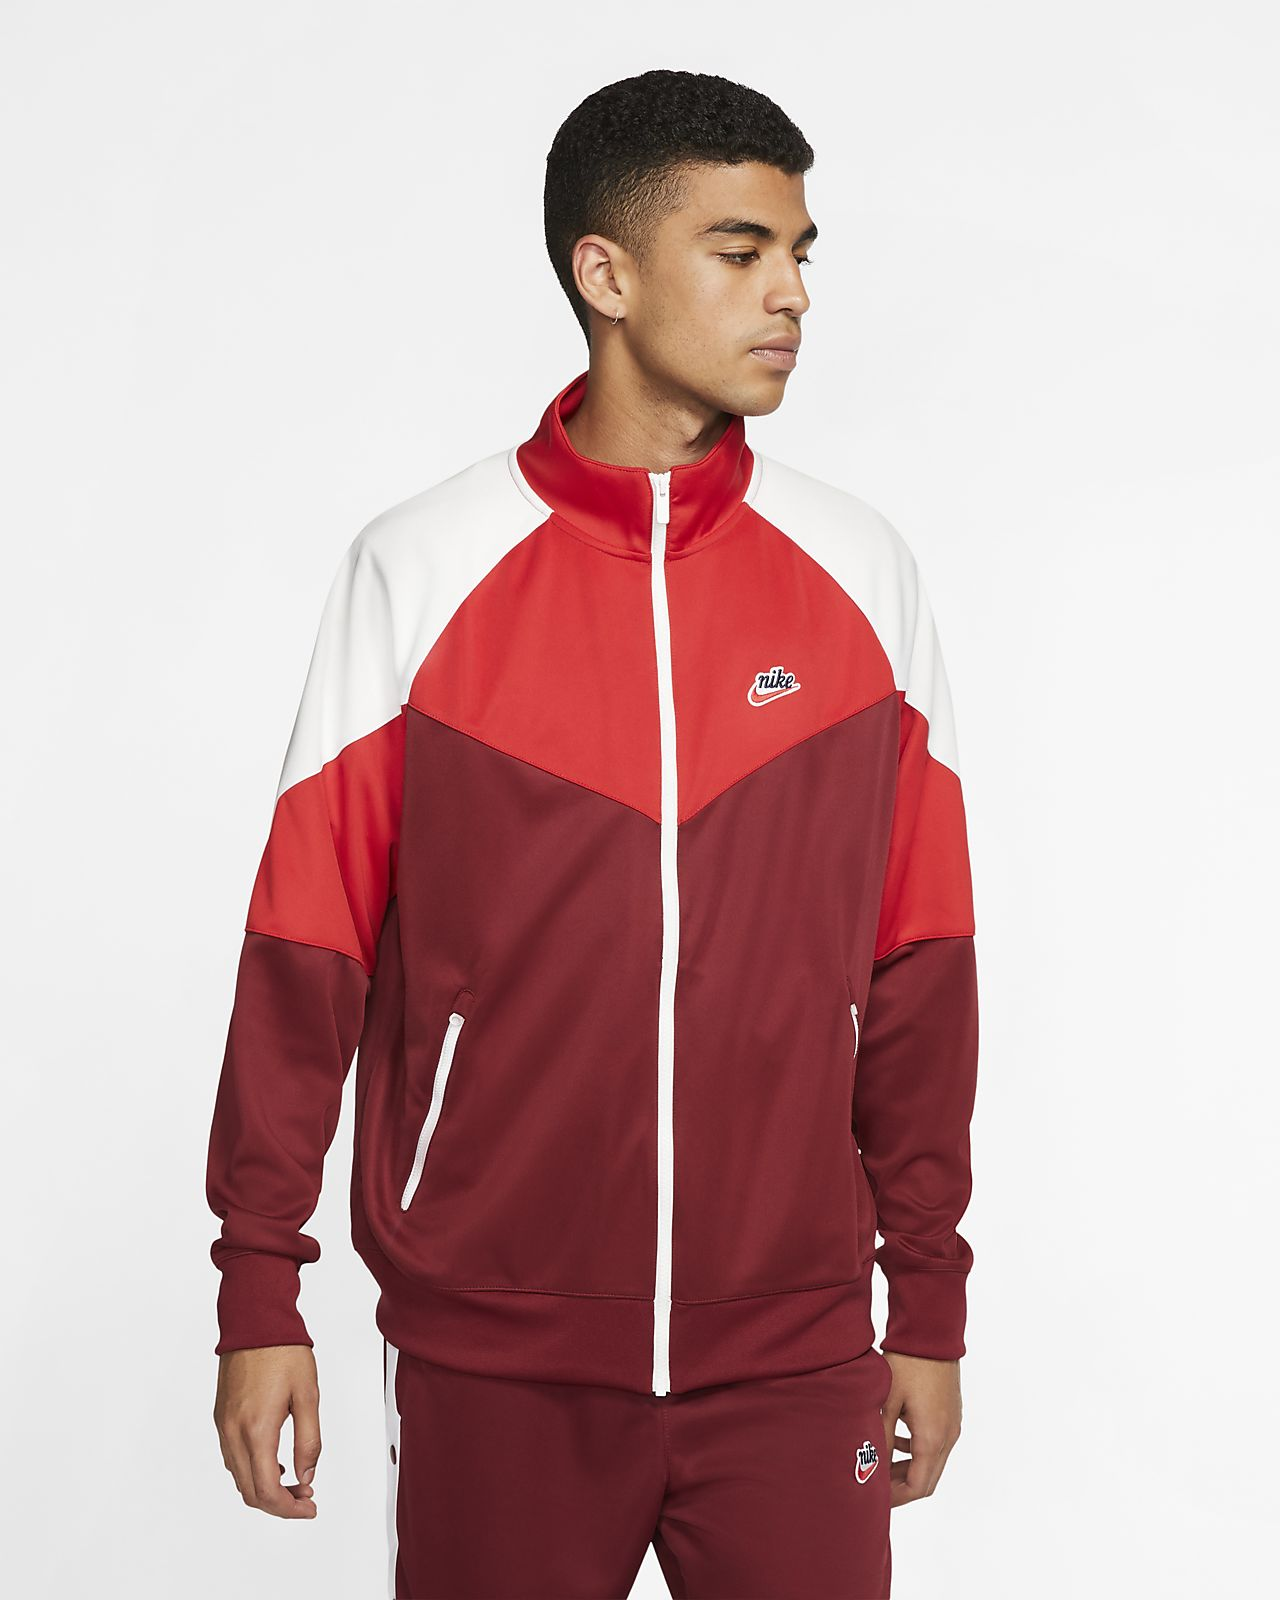 Nike Sportswear Windrunner Men's Jacket